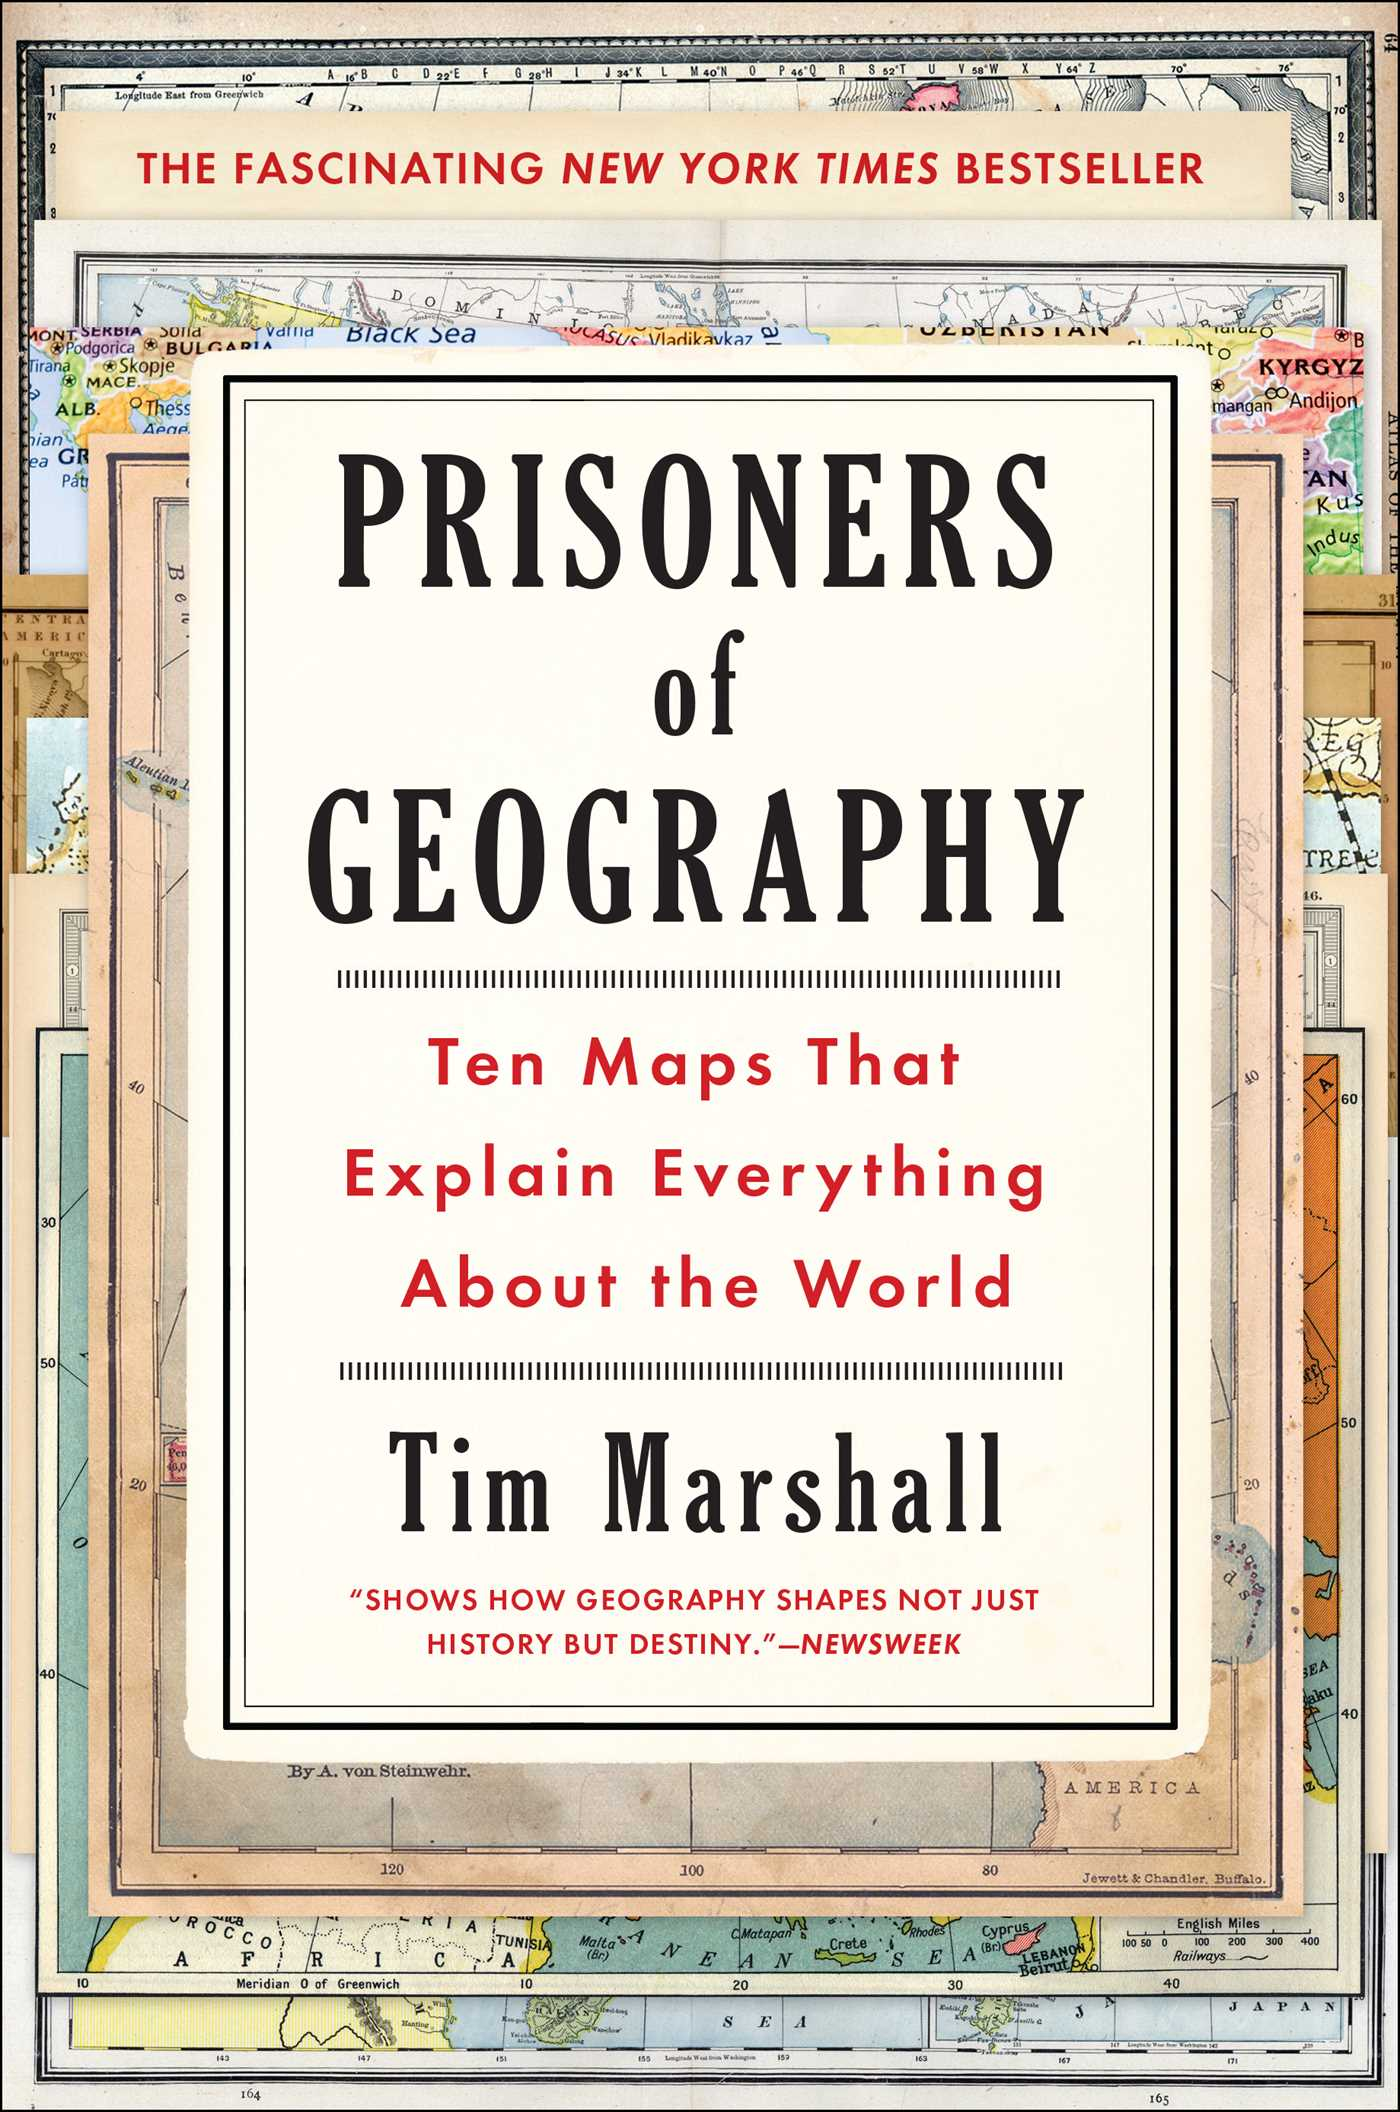 Book Cover Image (jpg): Prisoners of Geography